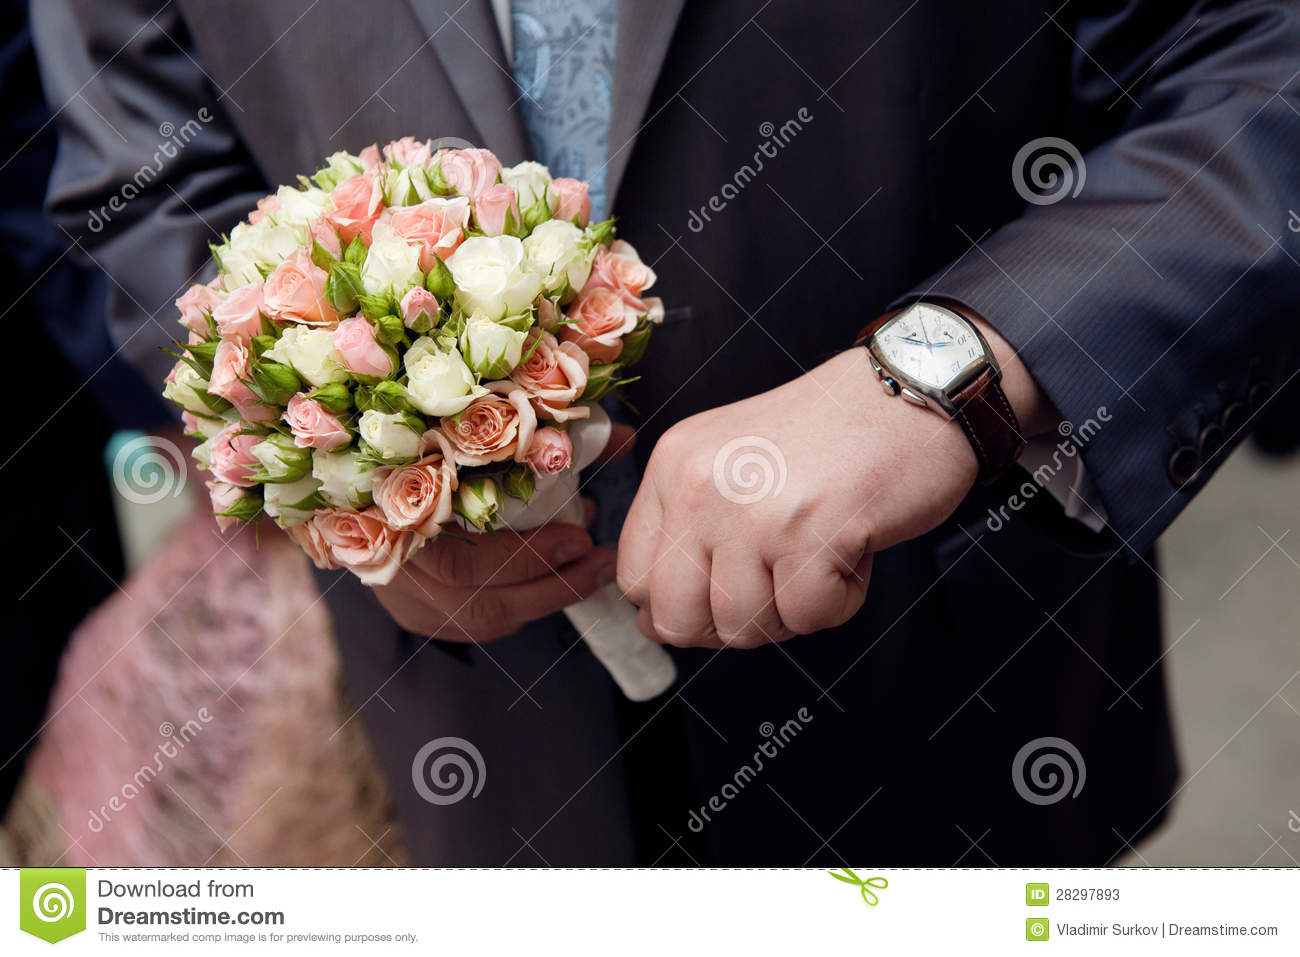 Man with watch hands a flower bouquet stock image image of arrows man with watch hands a flower bouquet izmirmasajfo Image collections